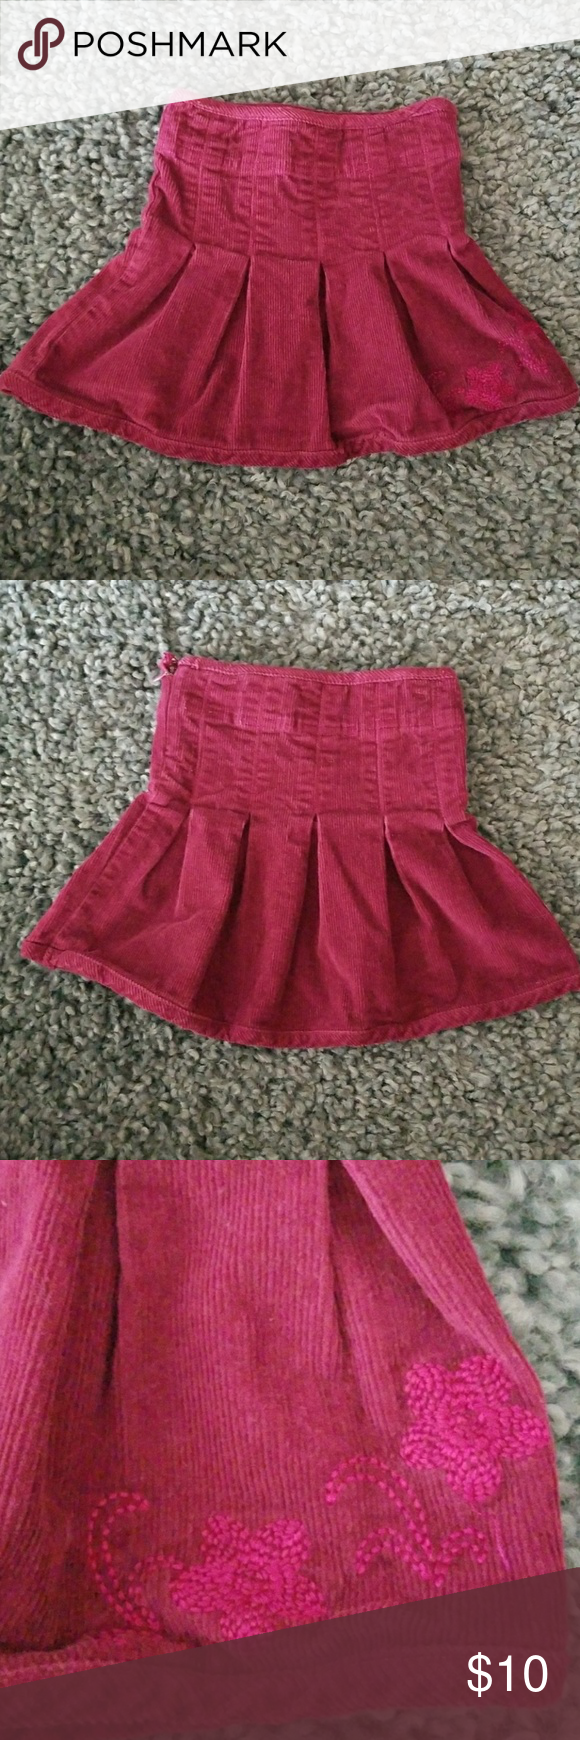 7cf2e0450b Laura Ashley skirt Cute burgundy corduroy pleated skirt with embroidered  flowers. Laura Ashley Bottoms Skirts